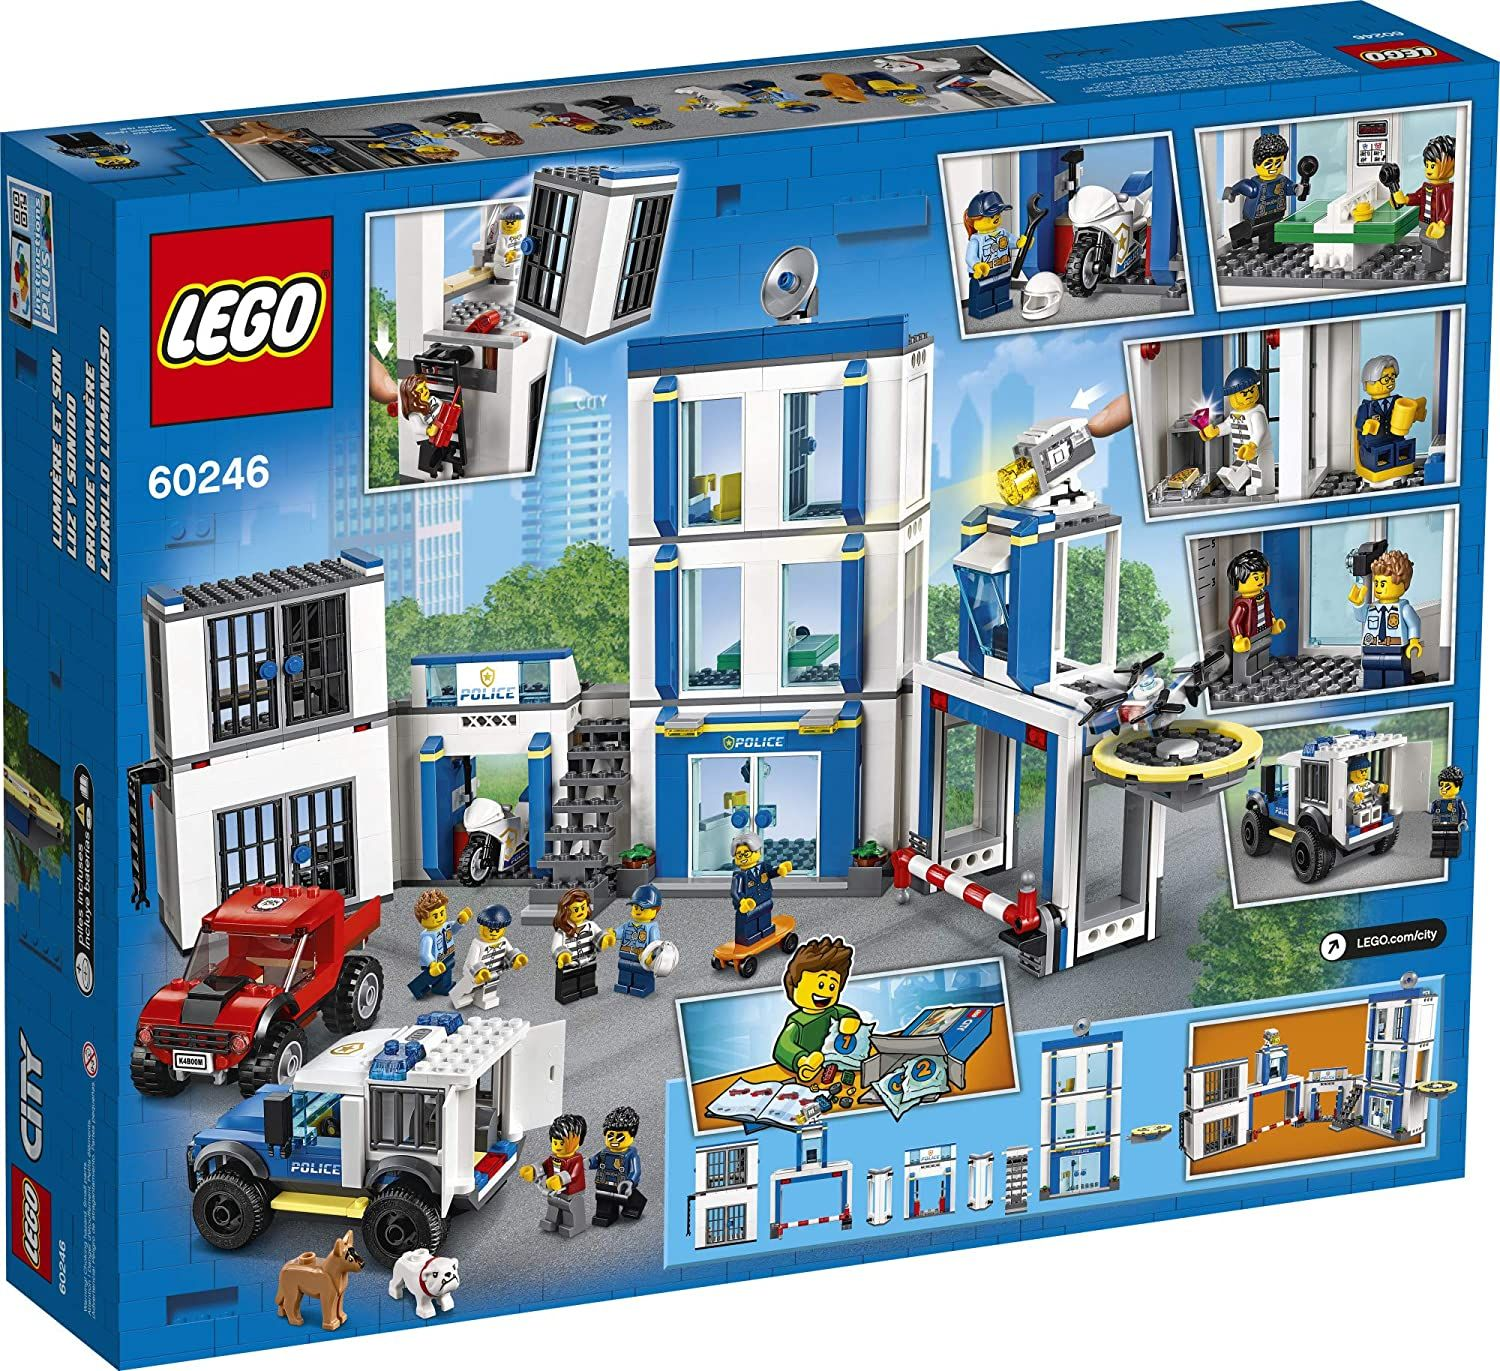 Lego City Police Station 60246 Police Toy Fun Building Set For Kids New 2020 743 Pieces In 2021 Lego City Police Station Lego City Lego City Police